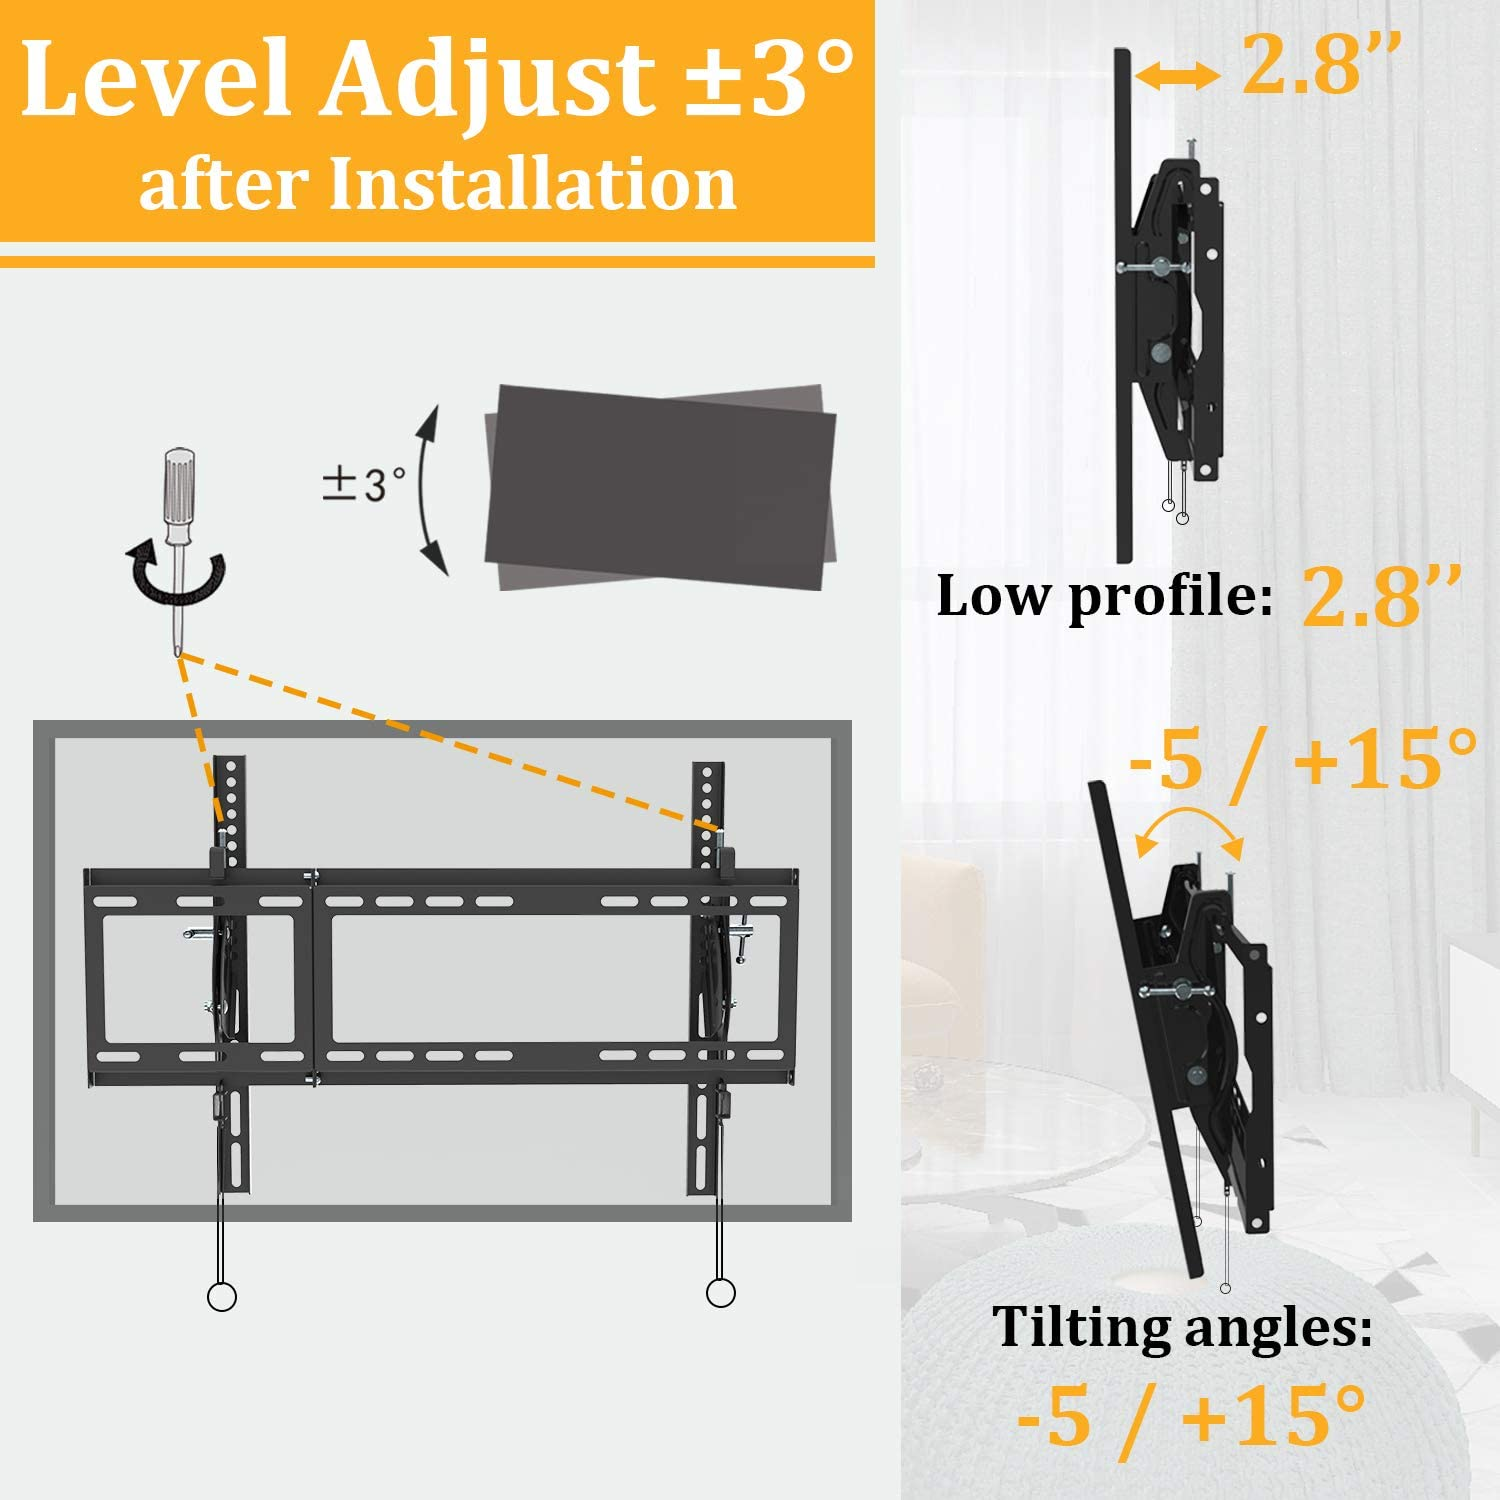 Tilting TV Wall Mount Bracket for Most 40-90 Inch Flat Large Screen TV JUSTSTONE Low Profile Wall TV Mount Fits 16-24 Inch Wood Studs Max VESA 800x400mm (32